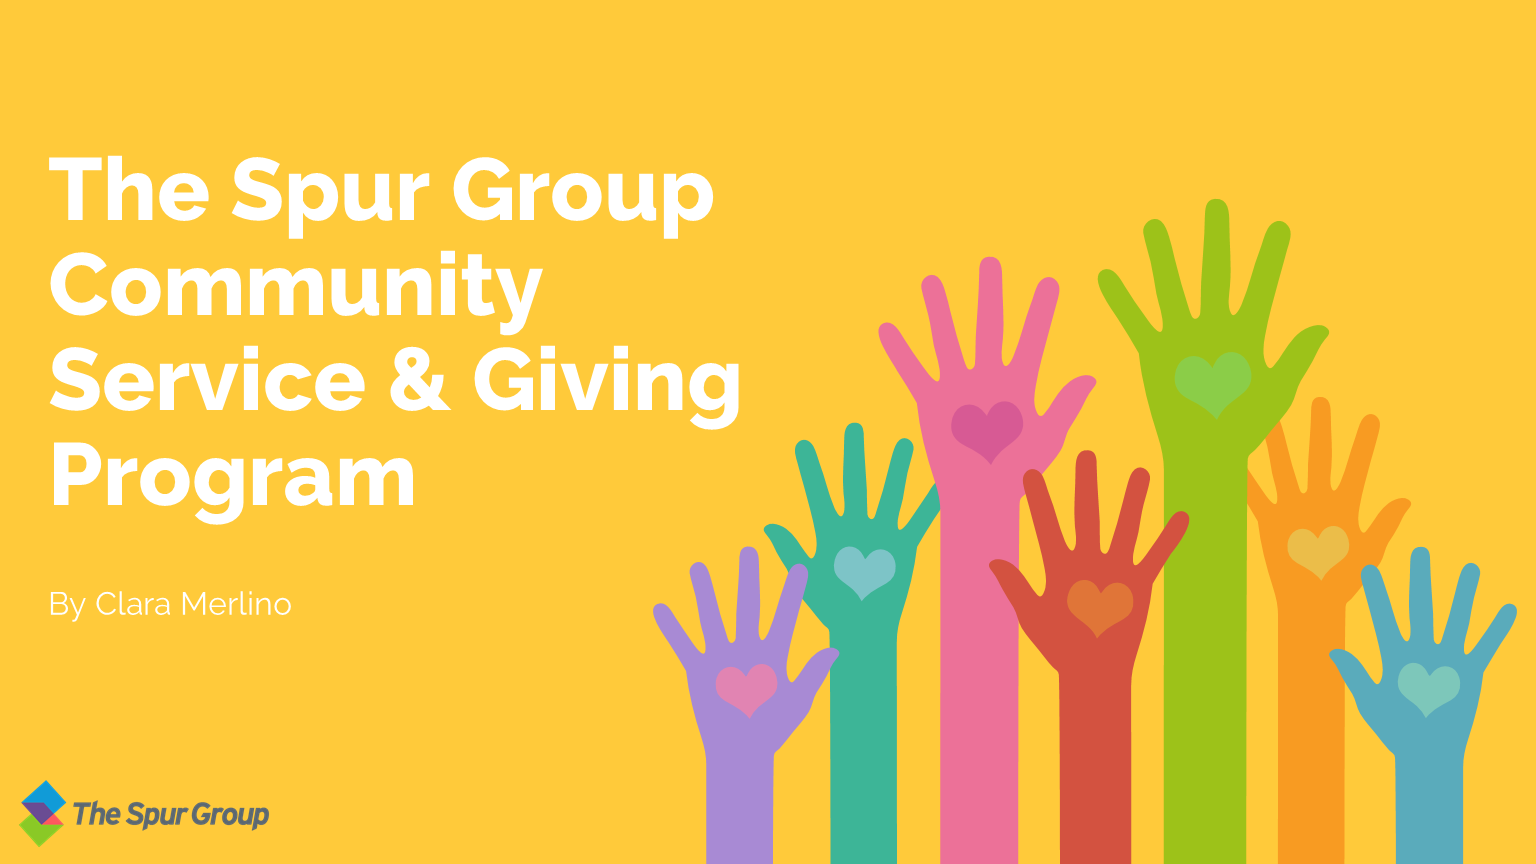 The Spur Group Community Service & Giving Program